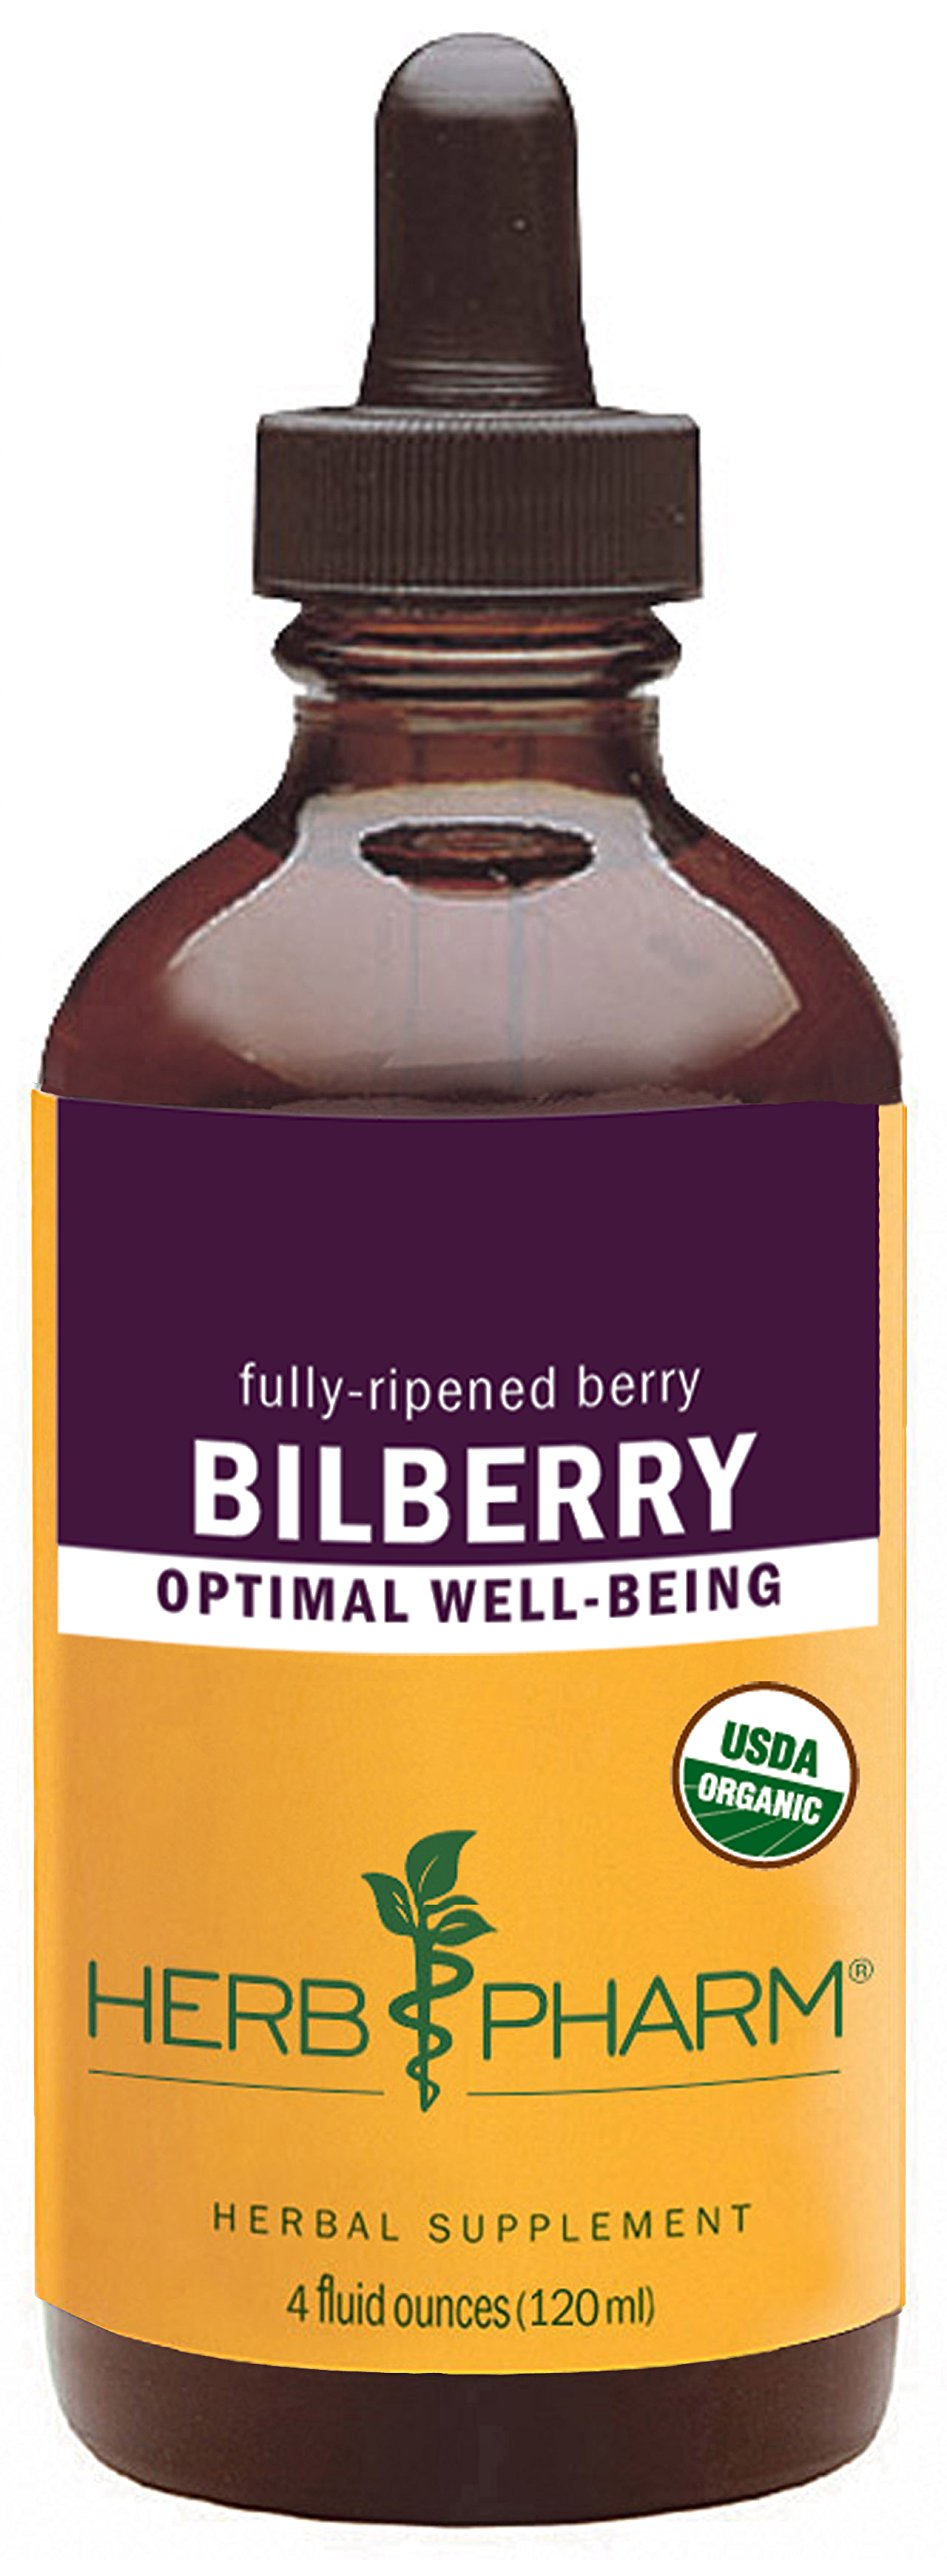 Herb Pharm Bilberry Liquid Extract for Eye and Vision Support - 4 Ounce